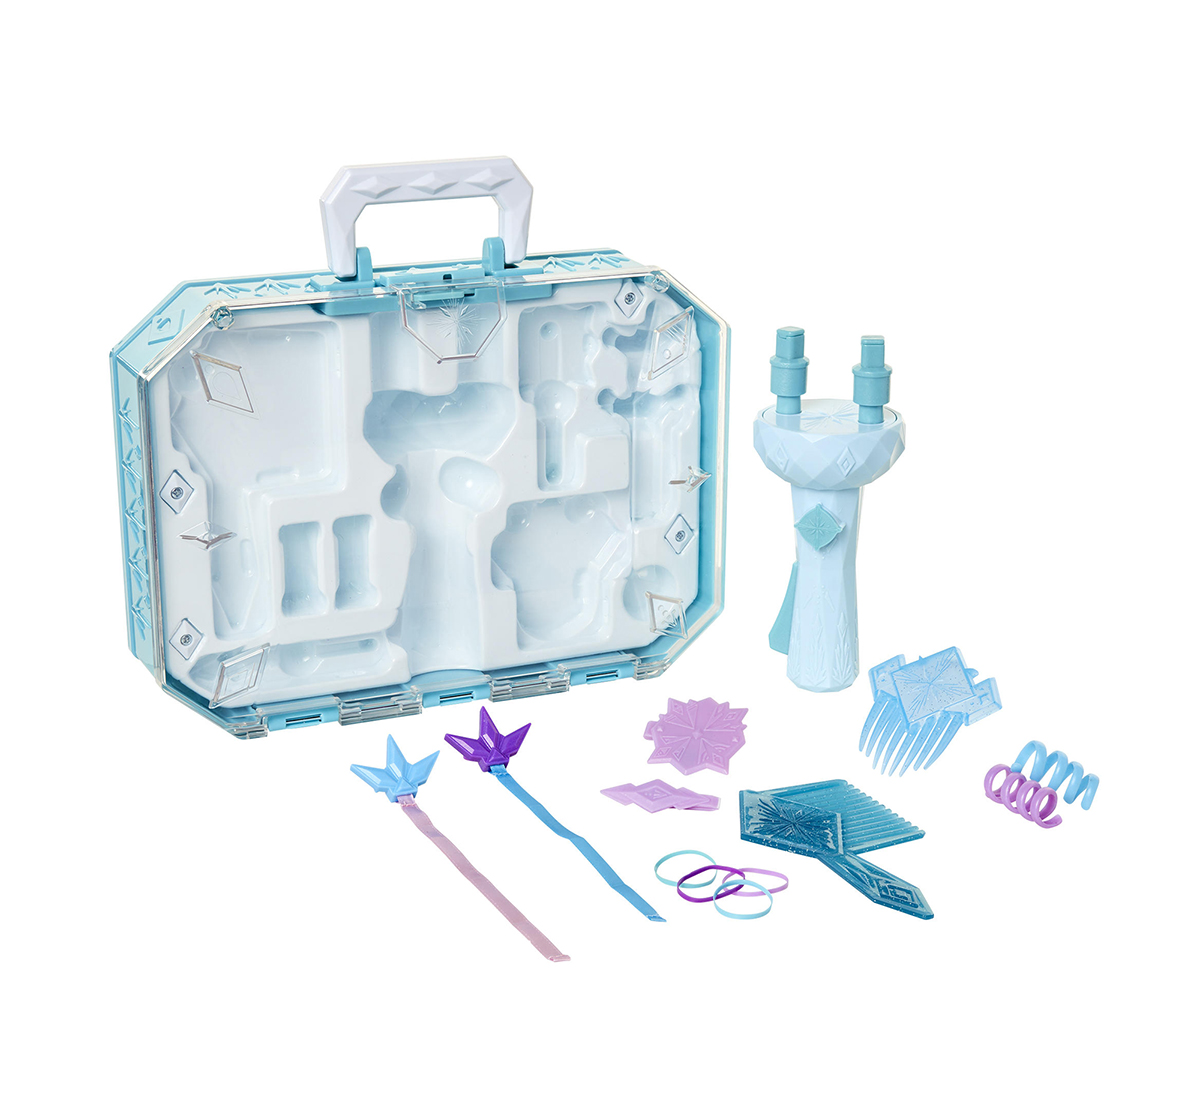 Disney | Disney Frozen 2 Elsa'S Enchanted Ice Accessory Set Toileteries and Makeup for Girls age 3Y+